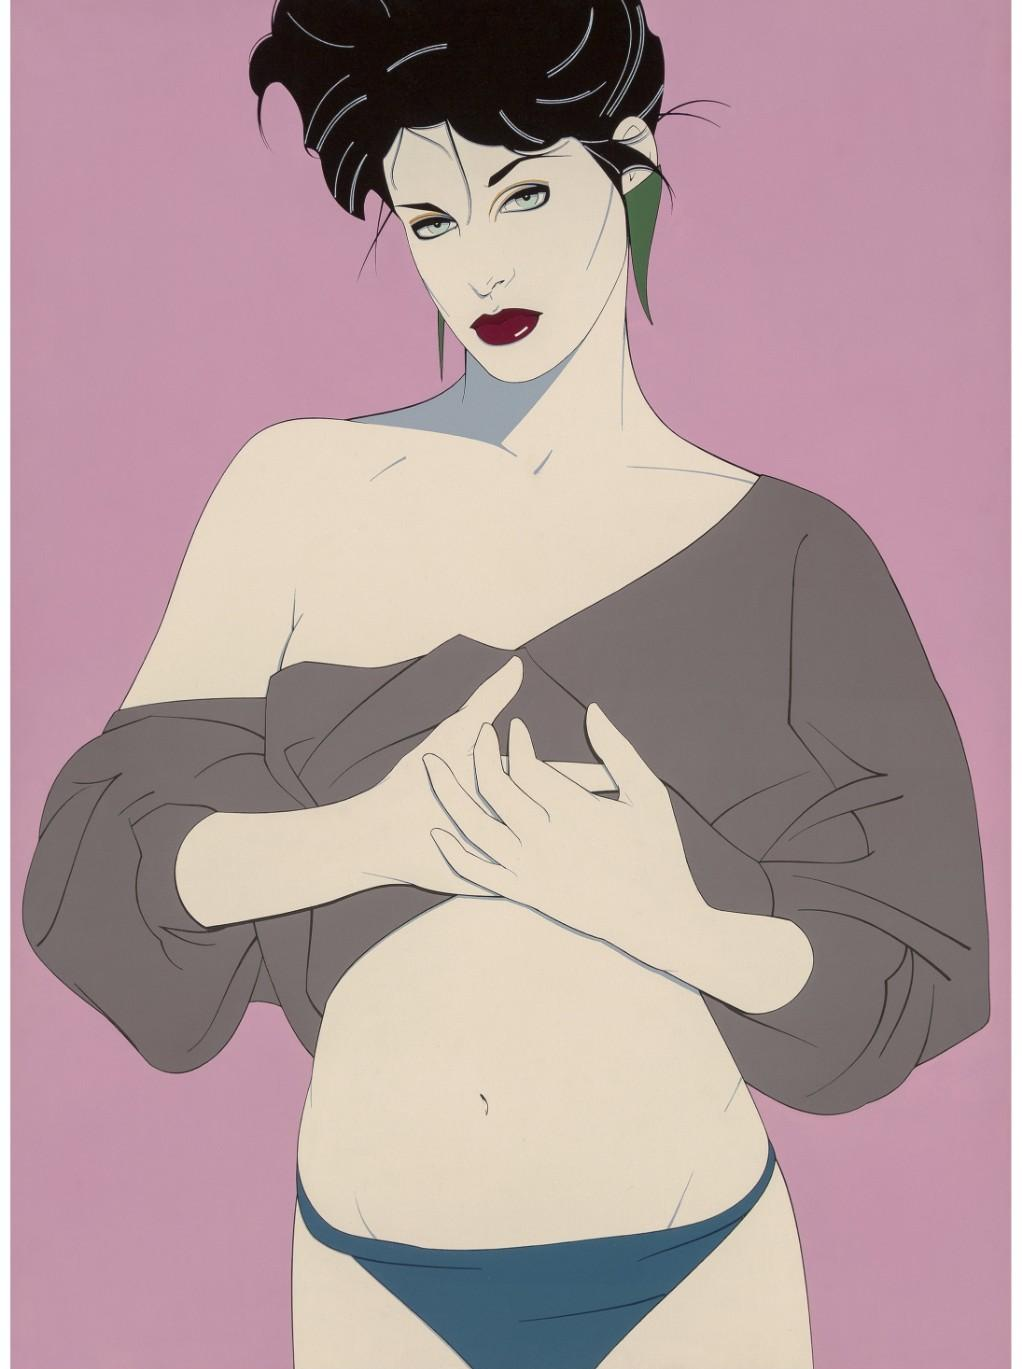 Patrick Nagel, Untitled